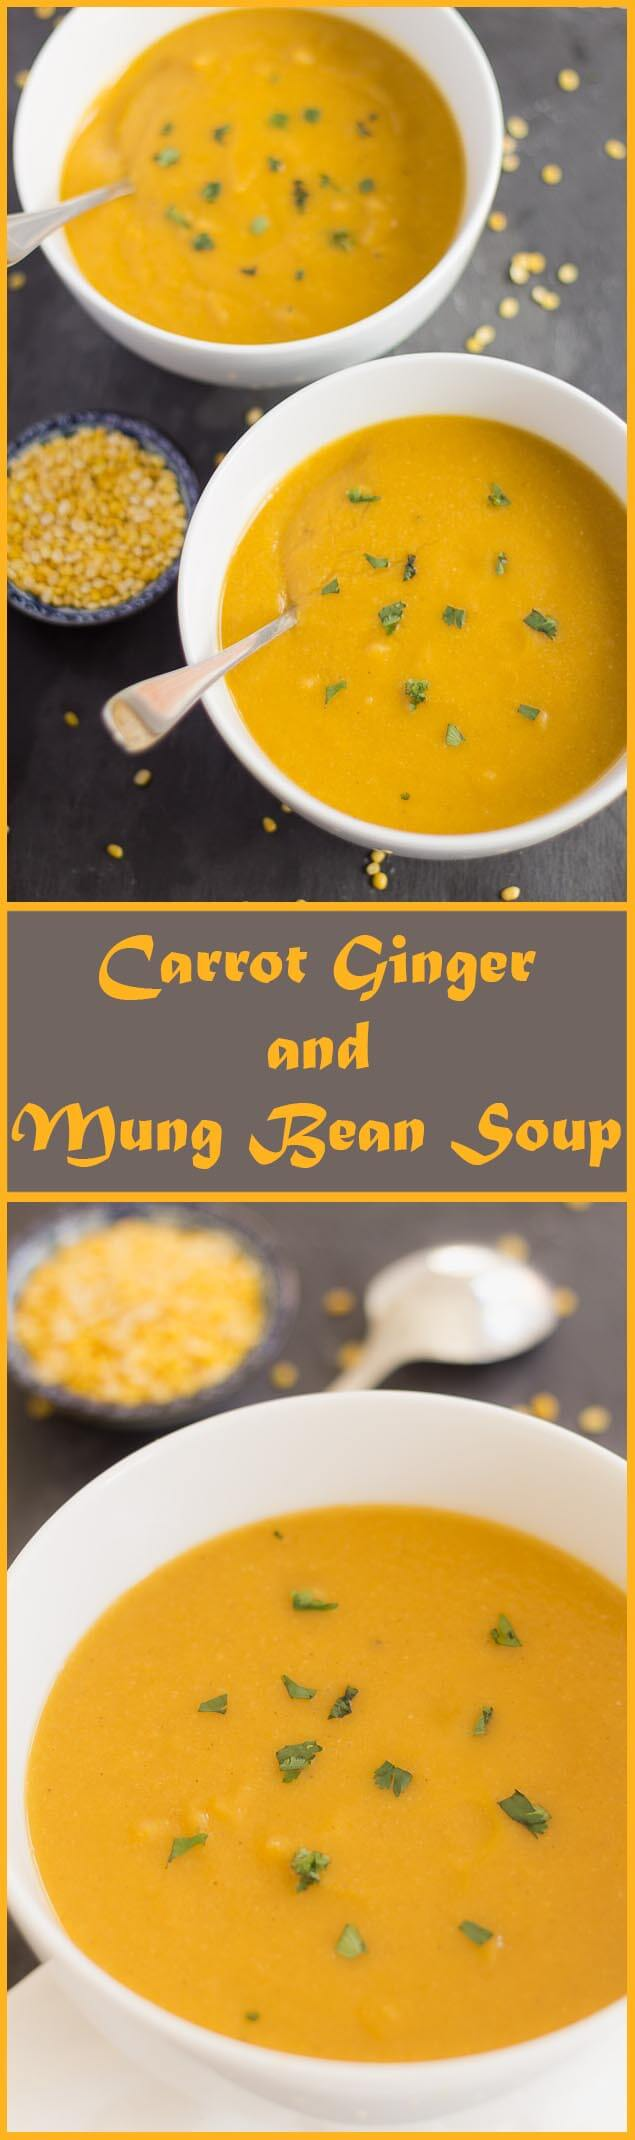 Lightly spiced to give it a warming taste, this unique, vibrant, and extremely healthy carrot ginger and mung bean soup recipe also makes an extremely fibrous and filling meal.